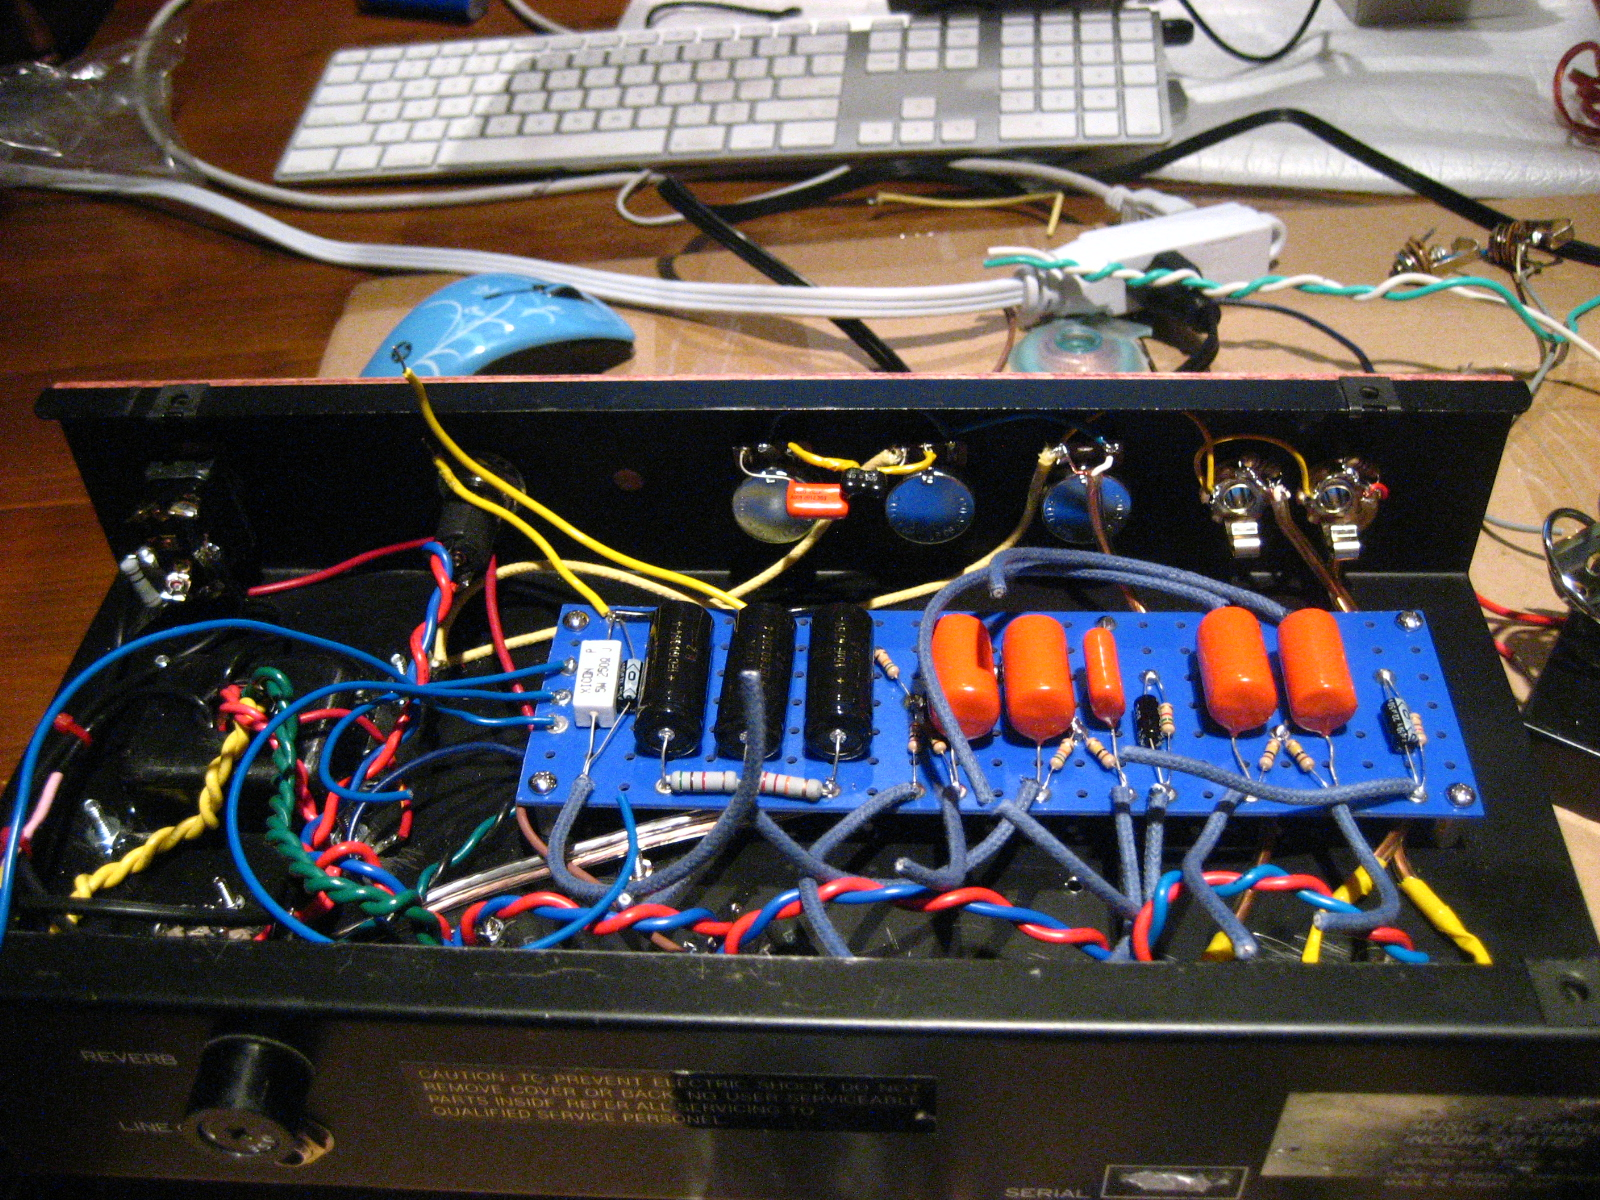 Practice Amp 5e3 Deluxe Conversion For Bert Guitar Talk Circuit Board Eyelets Finished Wiring Up The